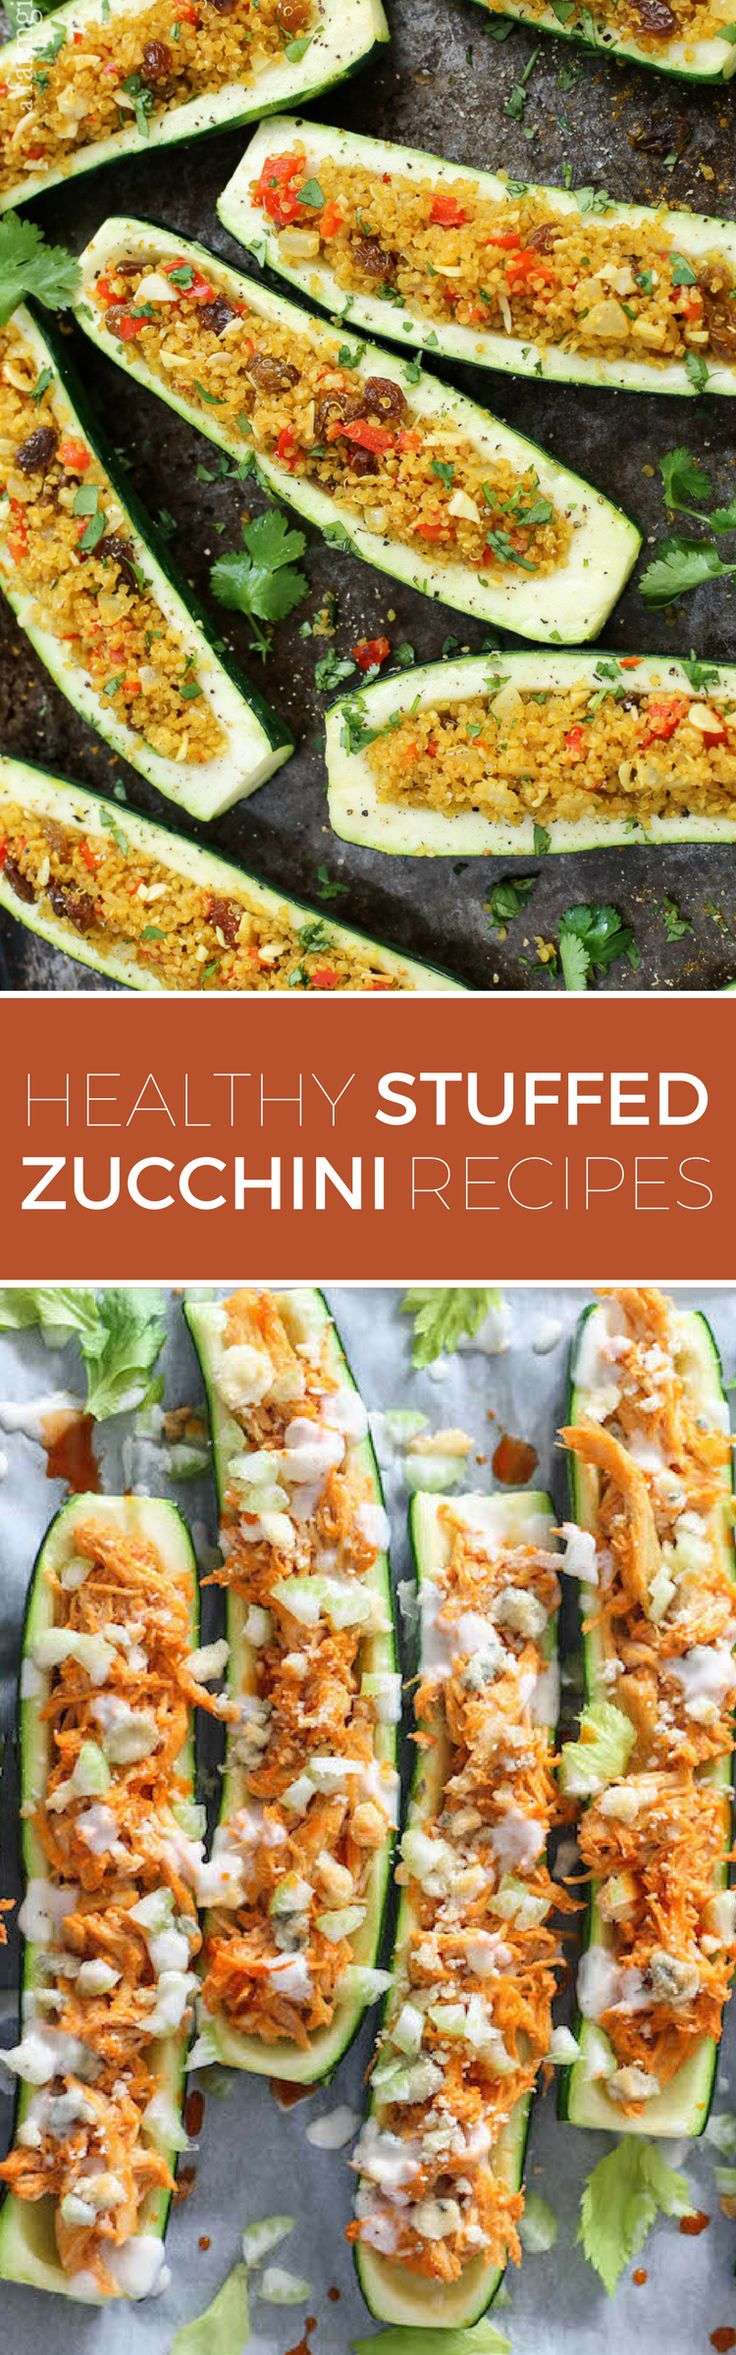 10 Healthy Stuffed Zucchini Recipes // Have an excess of summer zucchini? Stuff it to the brims with all of your favorite fillings for an easy, low-carb dinner.